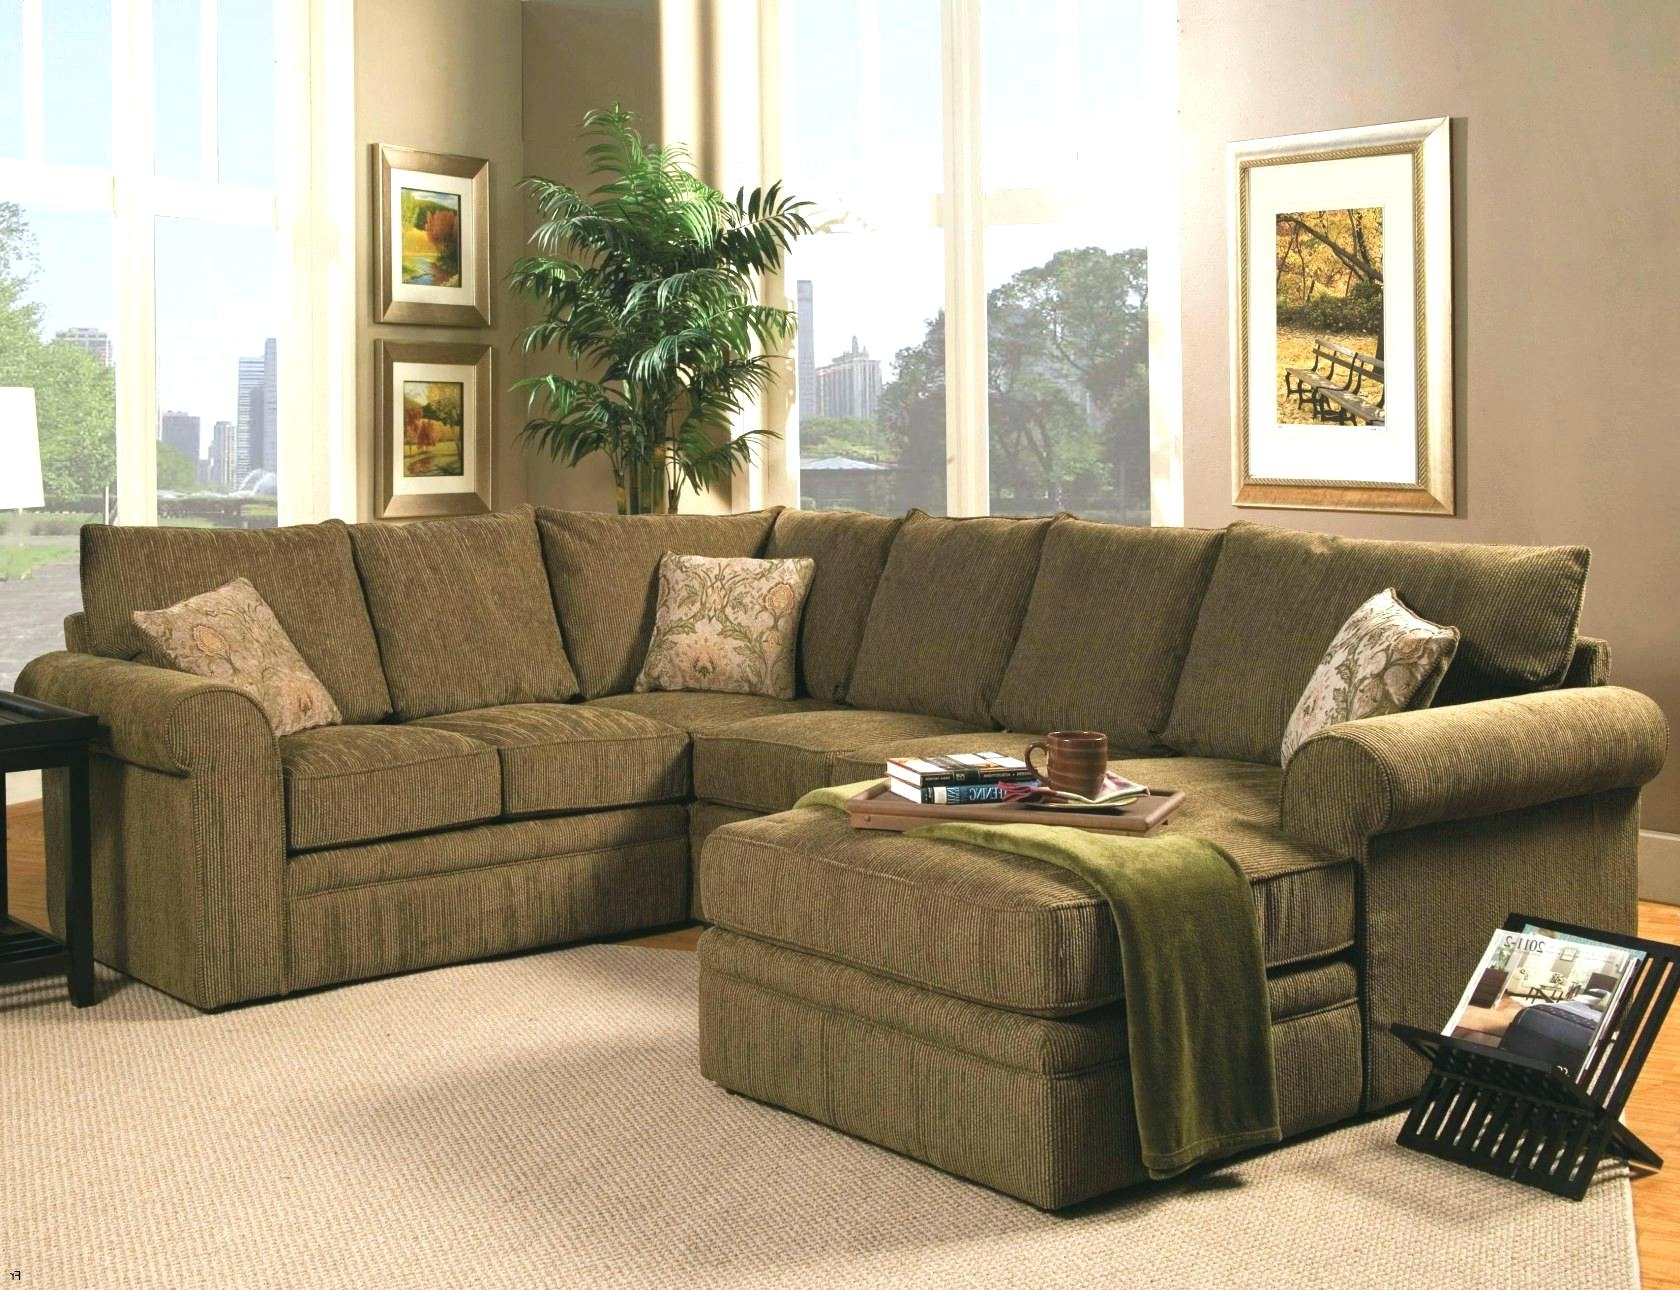 Green Sectional Sasage Sa With Chaise Teal Leather Couches For Intended For Most Up To Date Green Sectional Sofas With Chaise (View 7 of 20)